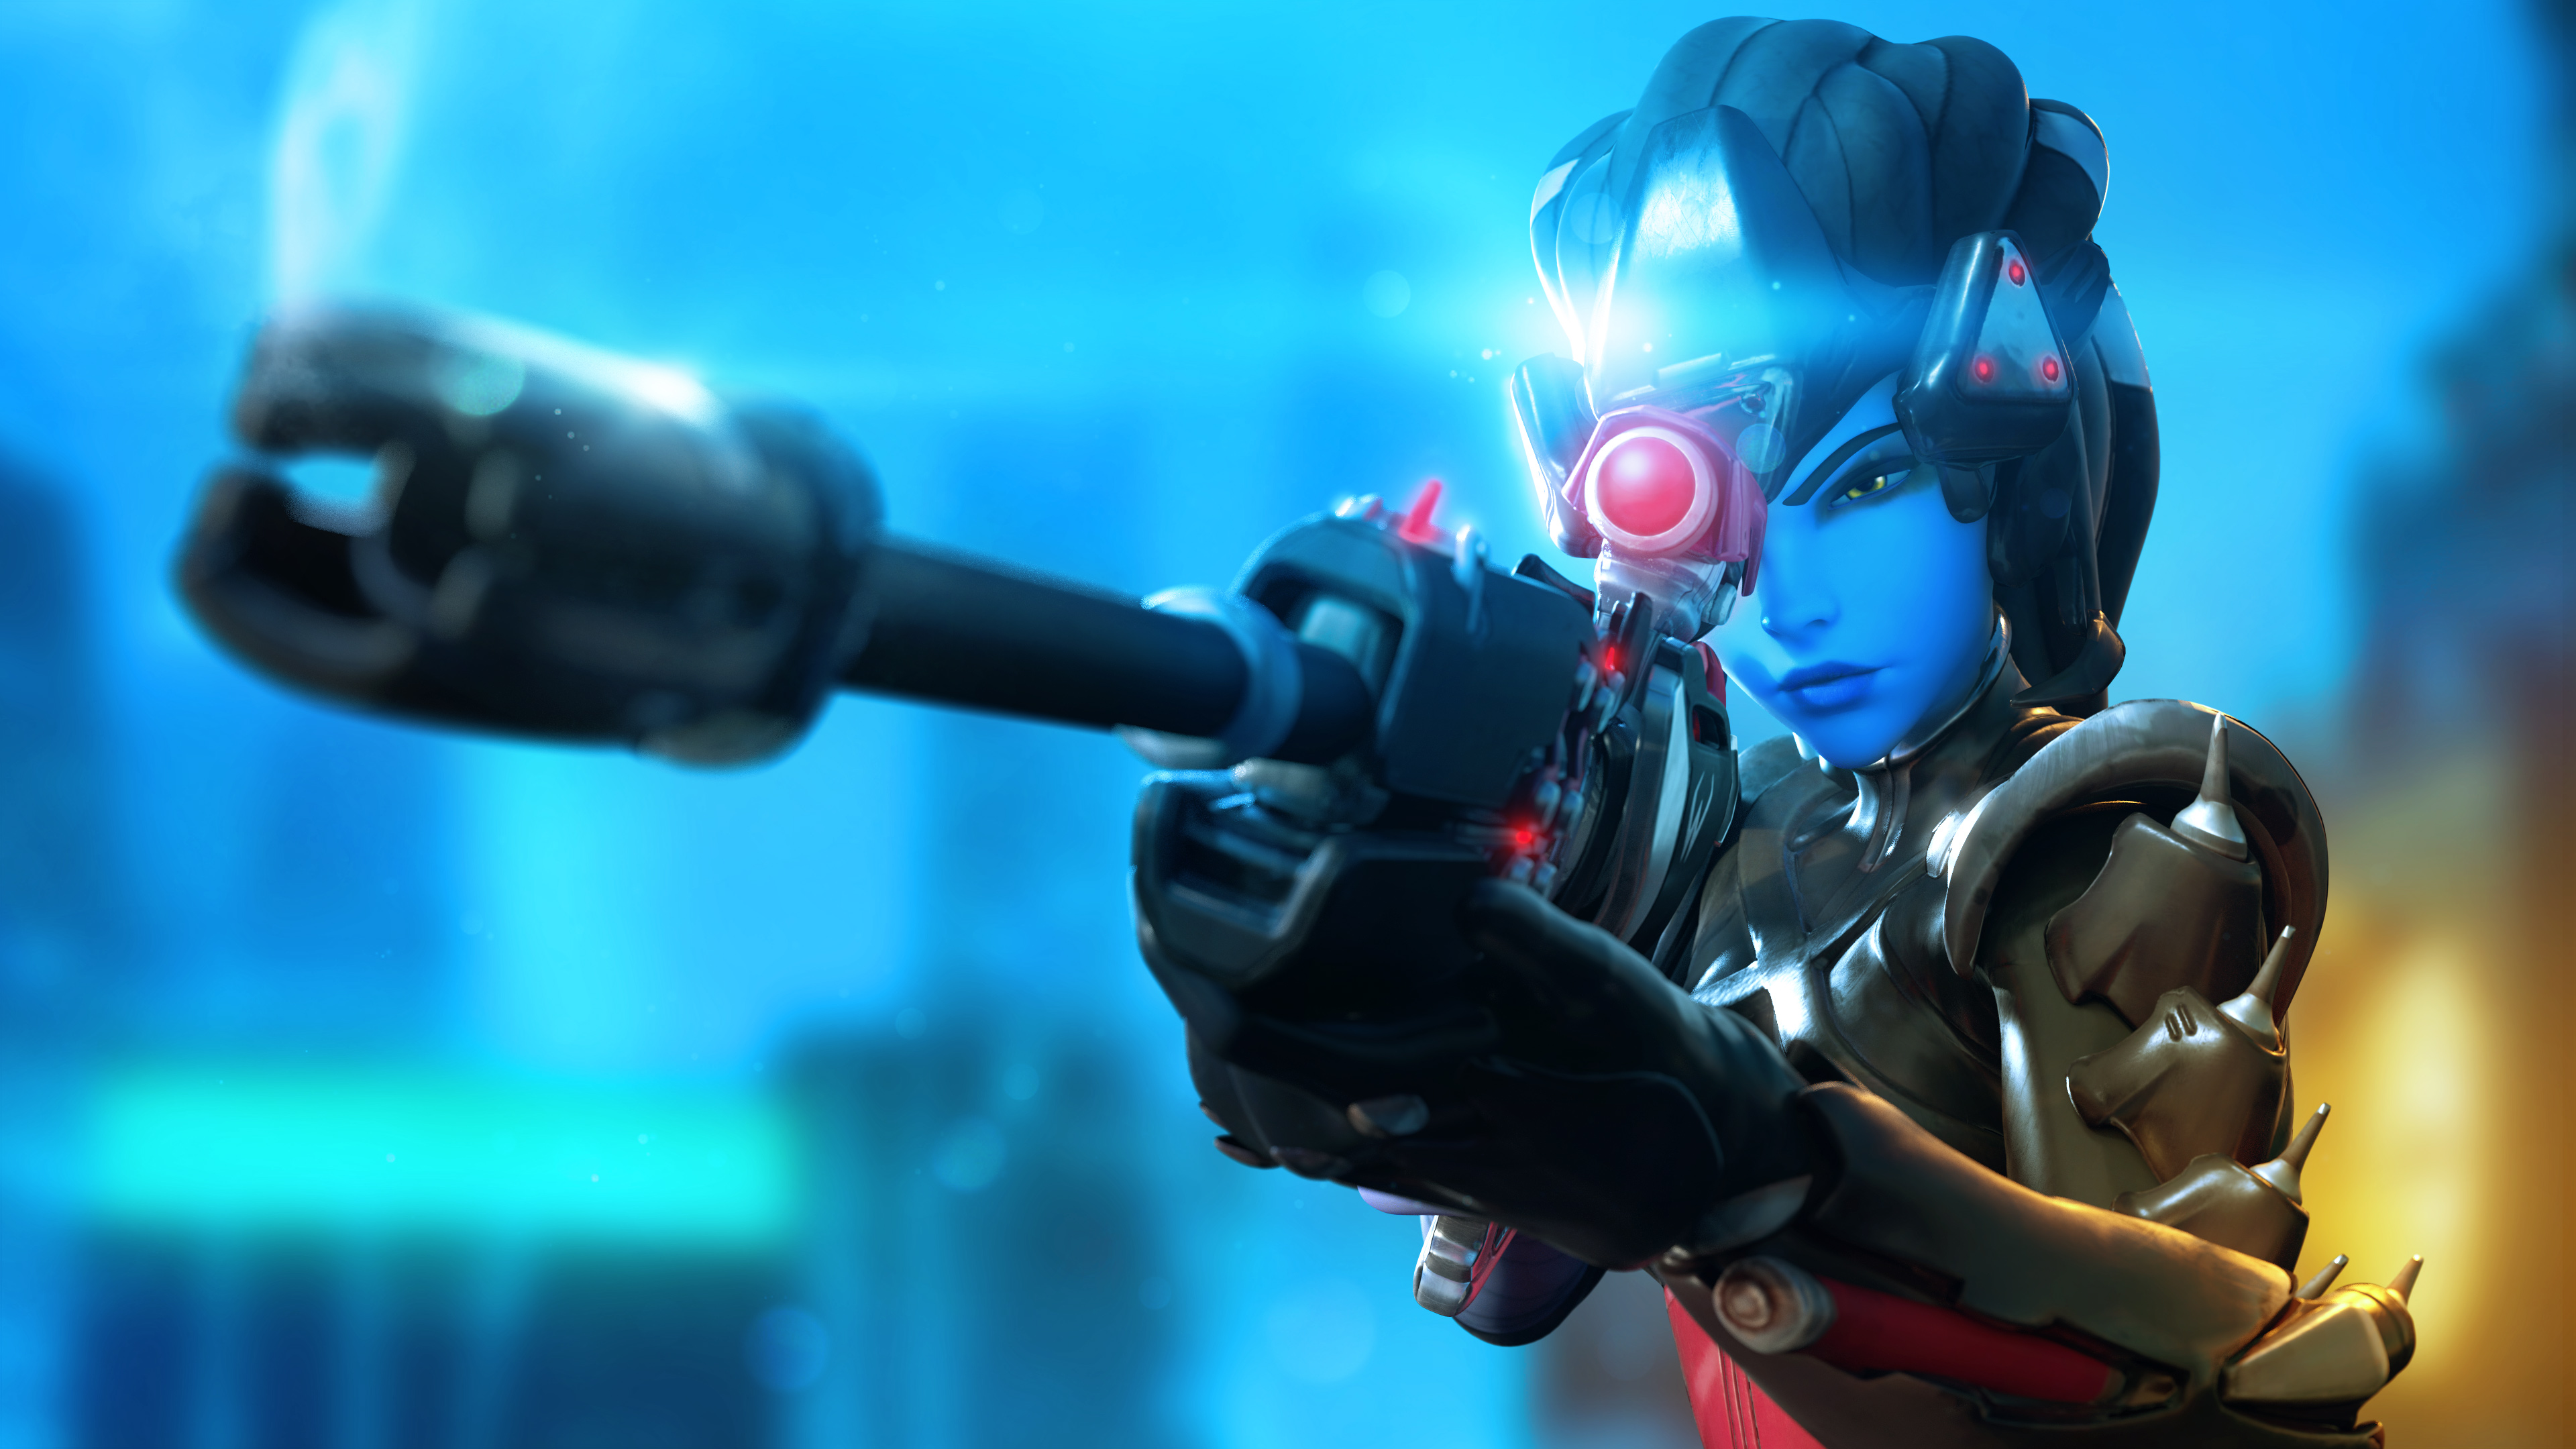 Noire Widowmaker 4K wallpaper